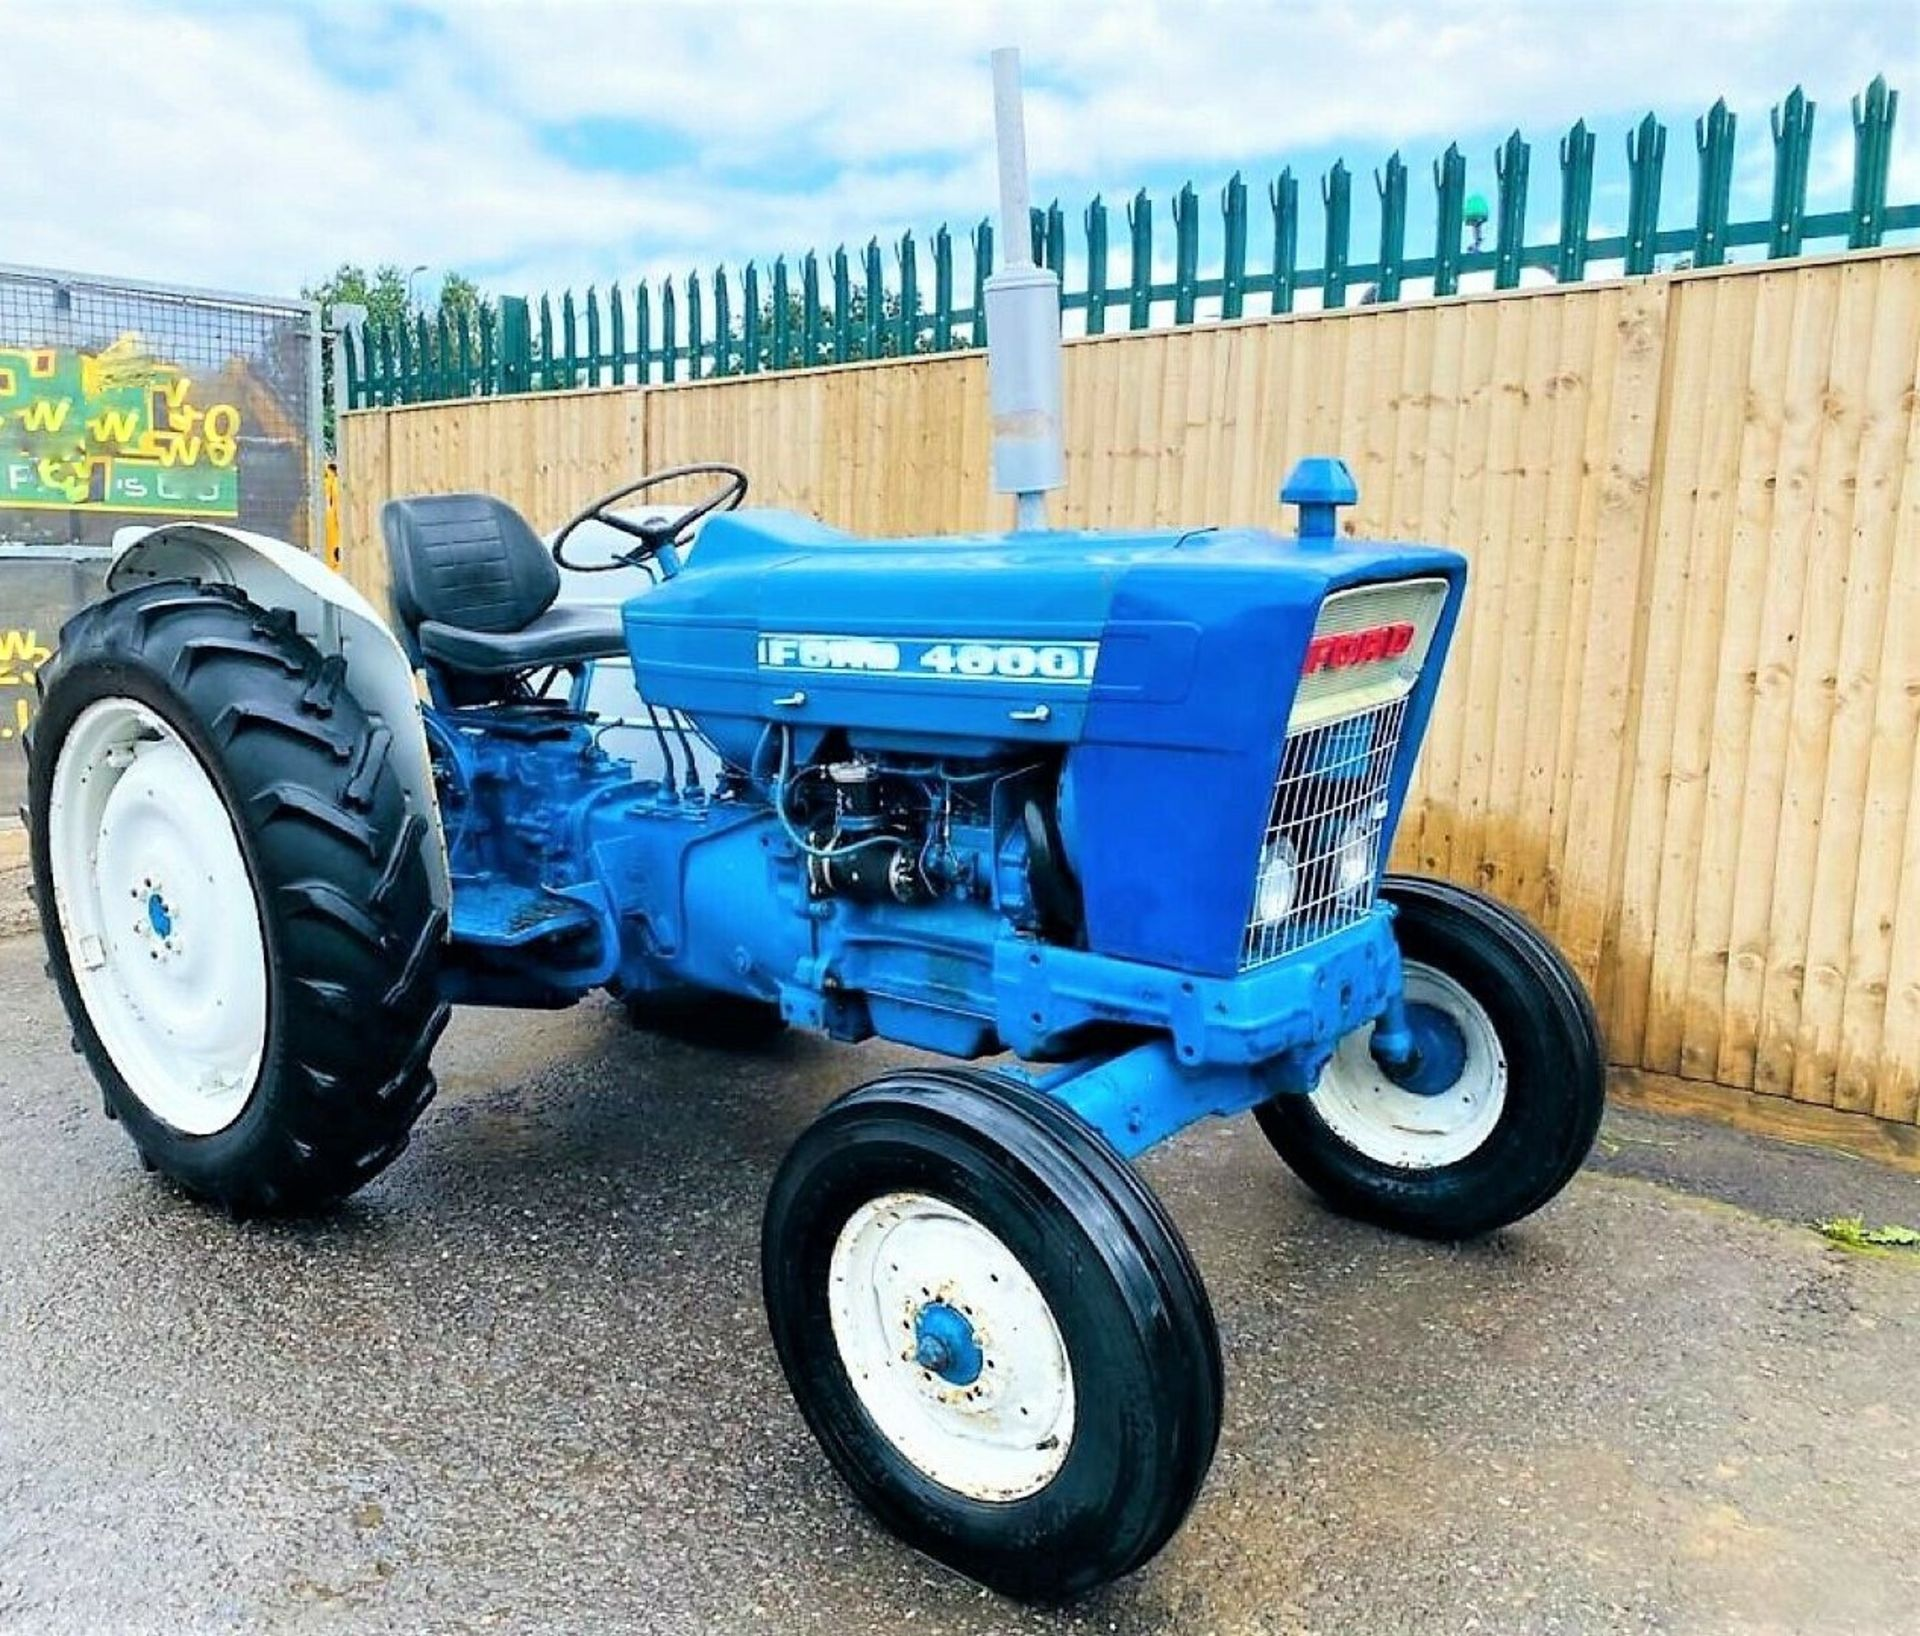 Ford 4000 Tractor 1969 - Image 3 of 12